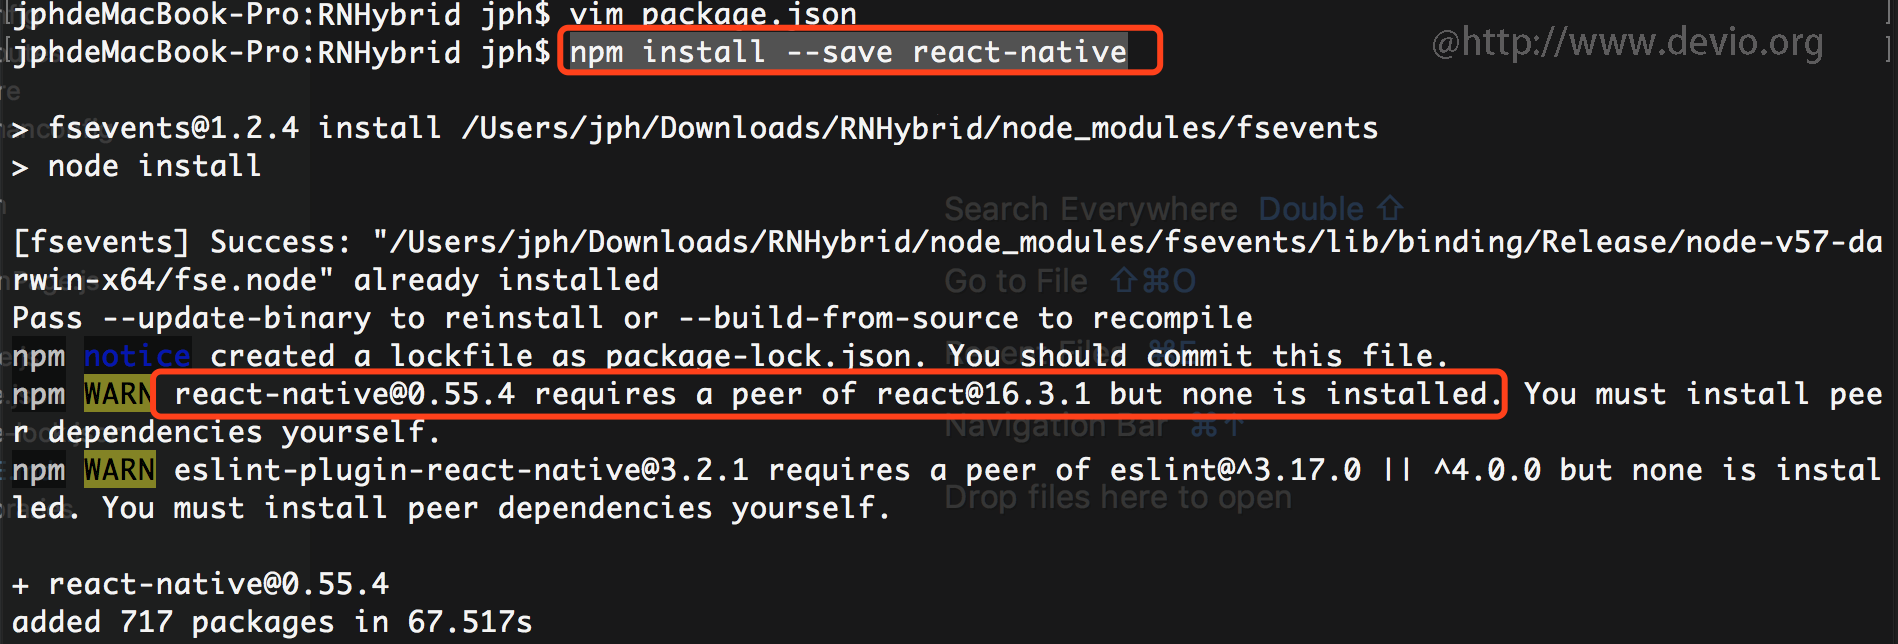 npm-install--save-react-native.png